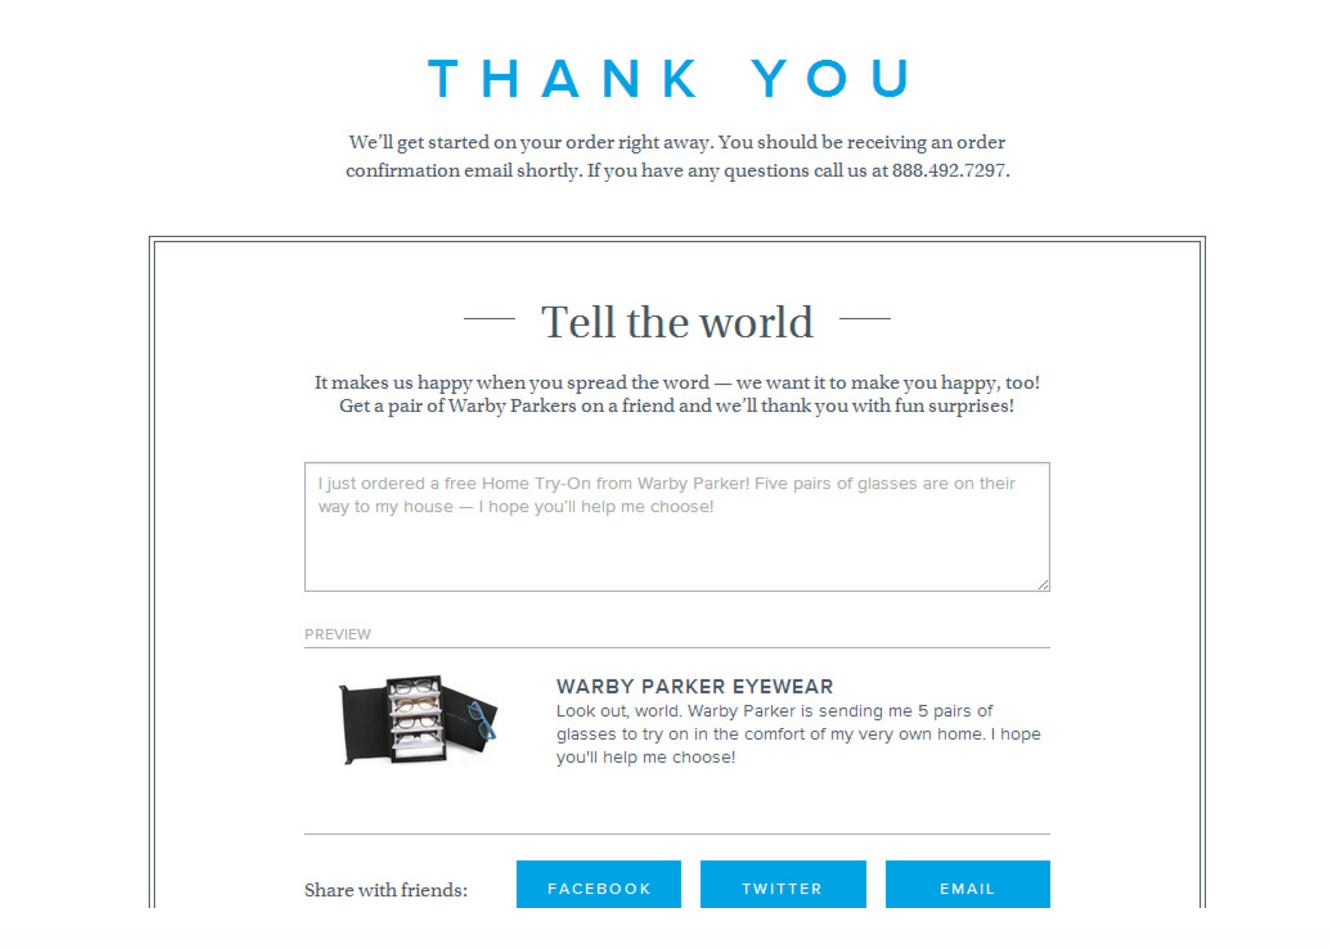 A referral email sent by Warby Parker